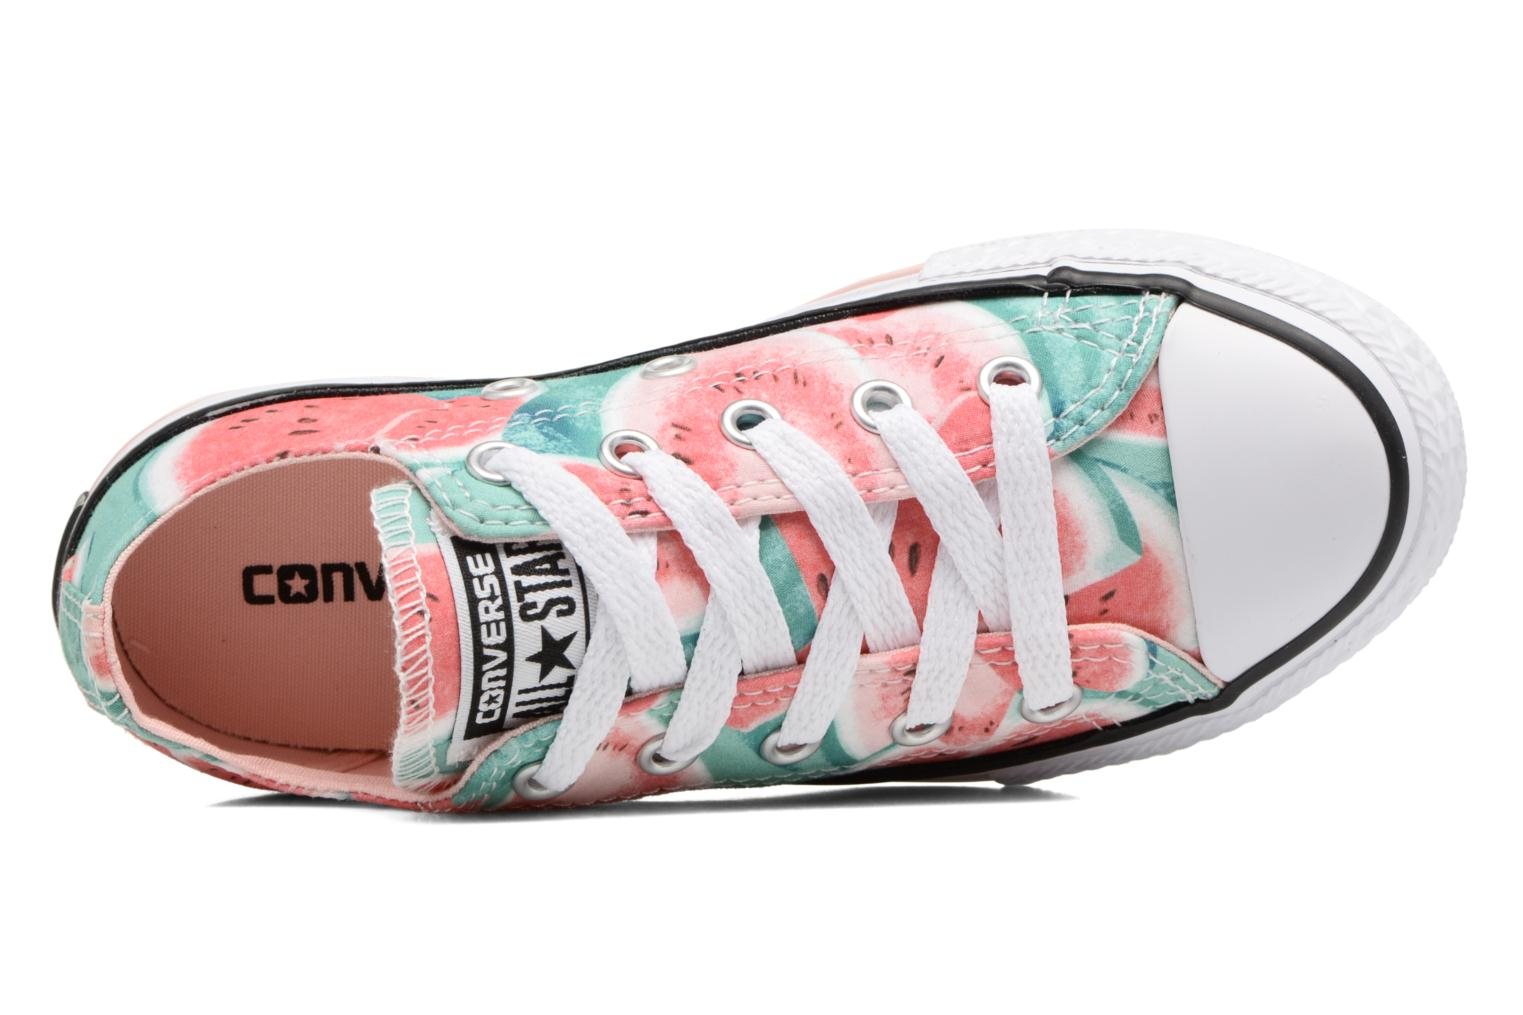 Chuck Taylor All Star Ox Vapor Pink/Green Glow/White